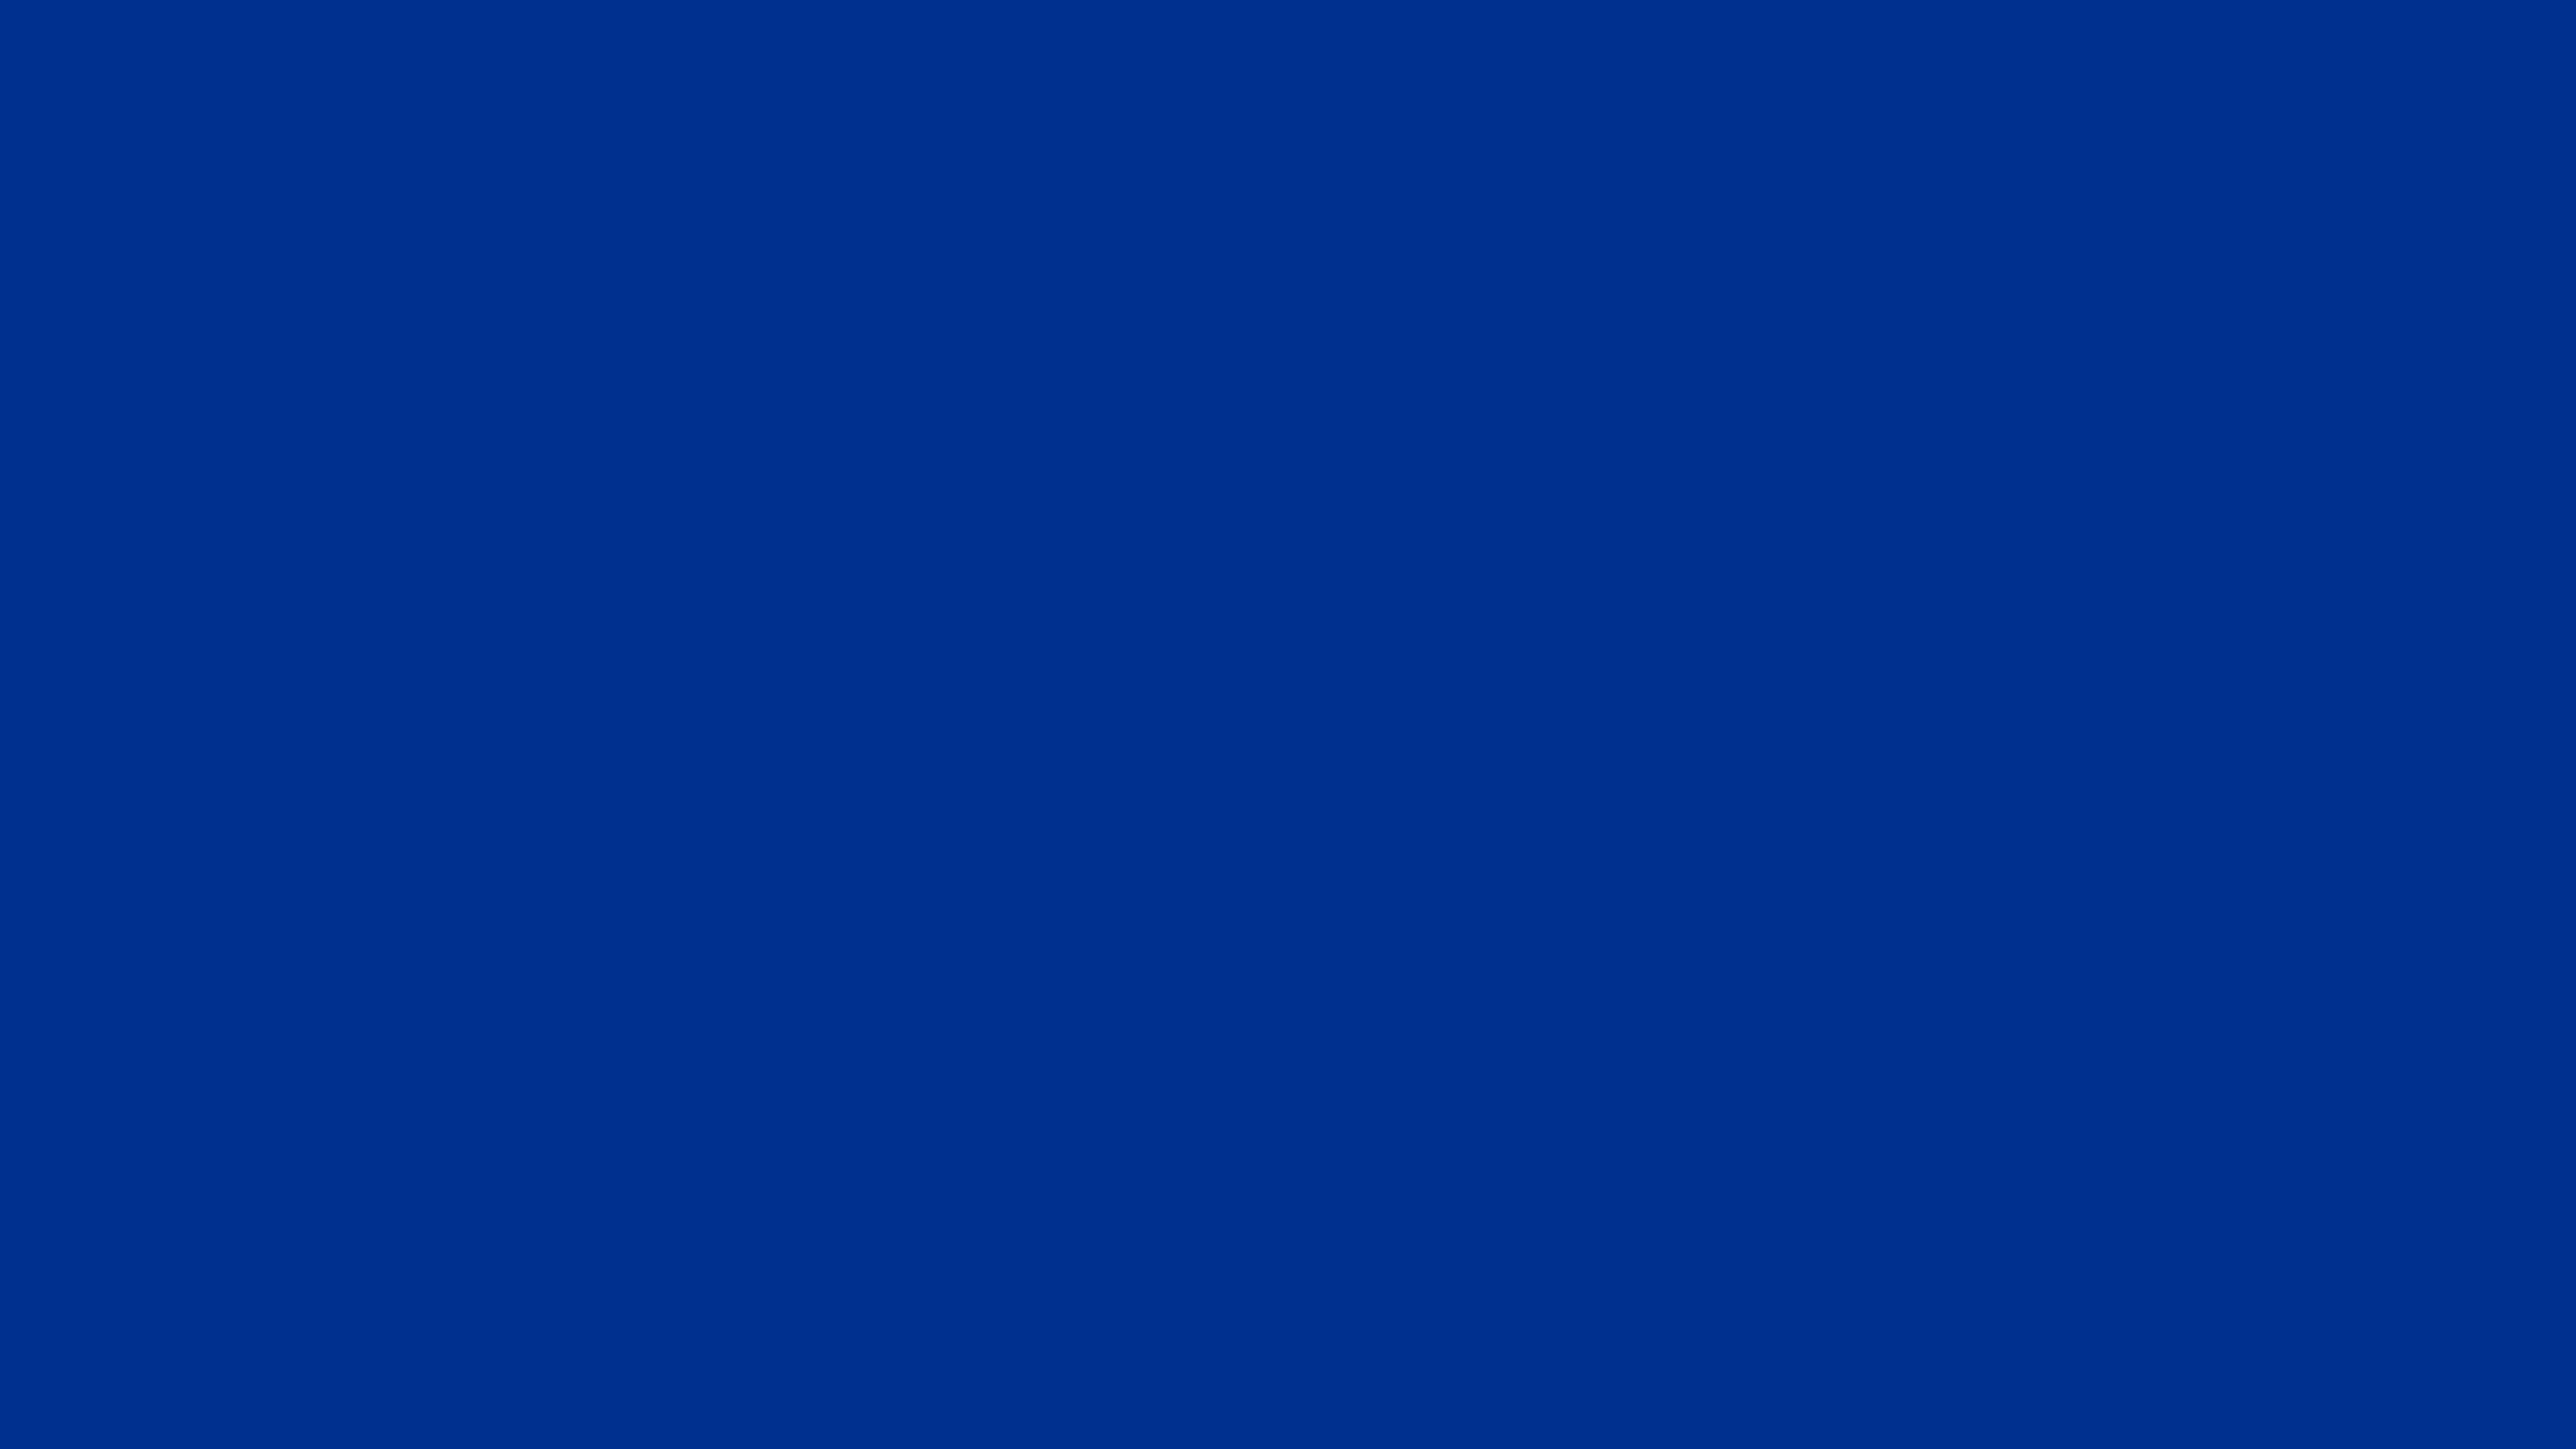 4096x2304 Air Force Dark Blue Solid Color Background